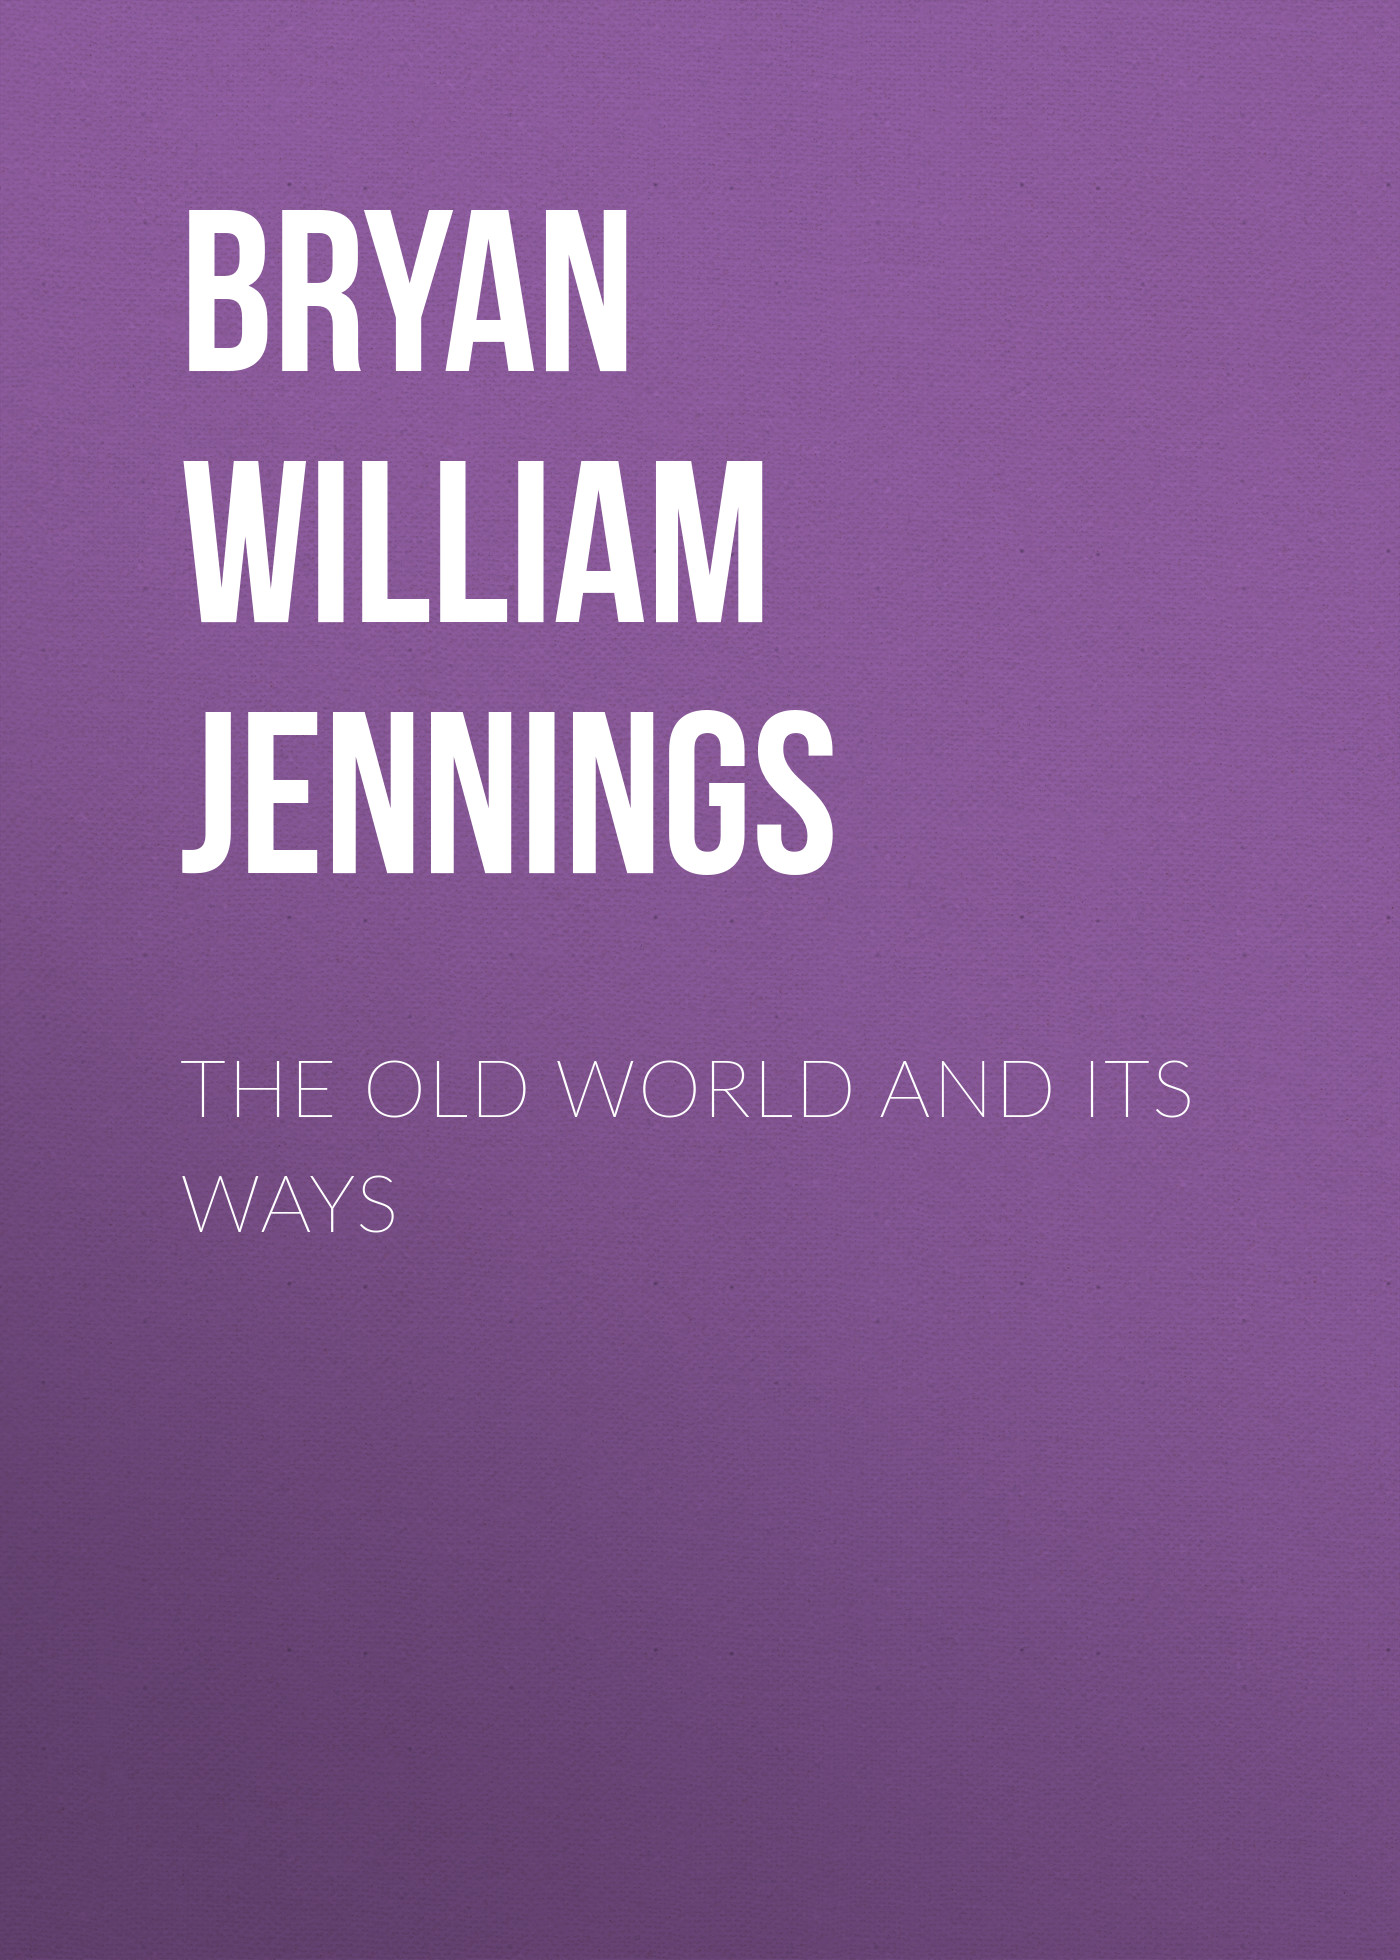 Bryan William Jennings The Old World and Its Ways william congreve the old batchelor